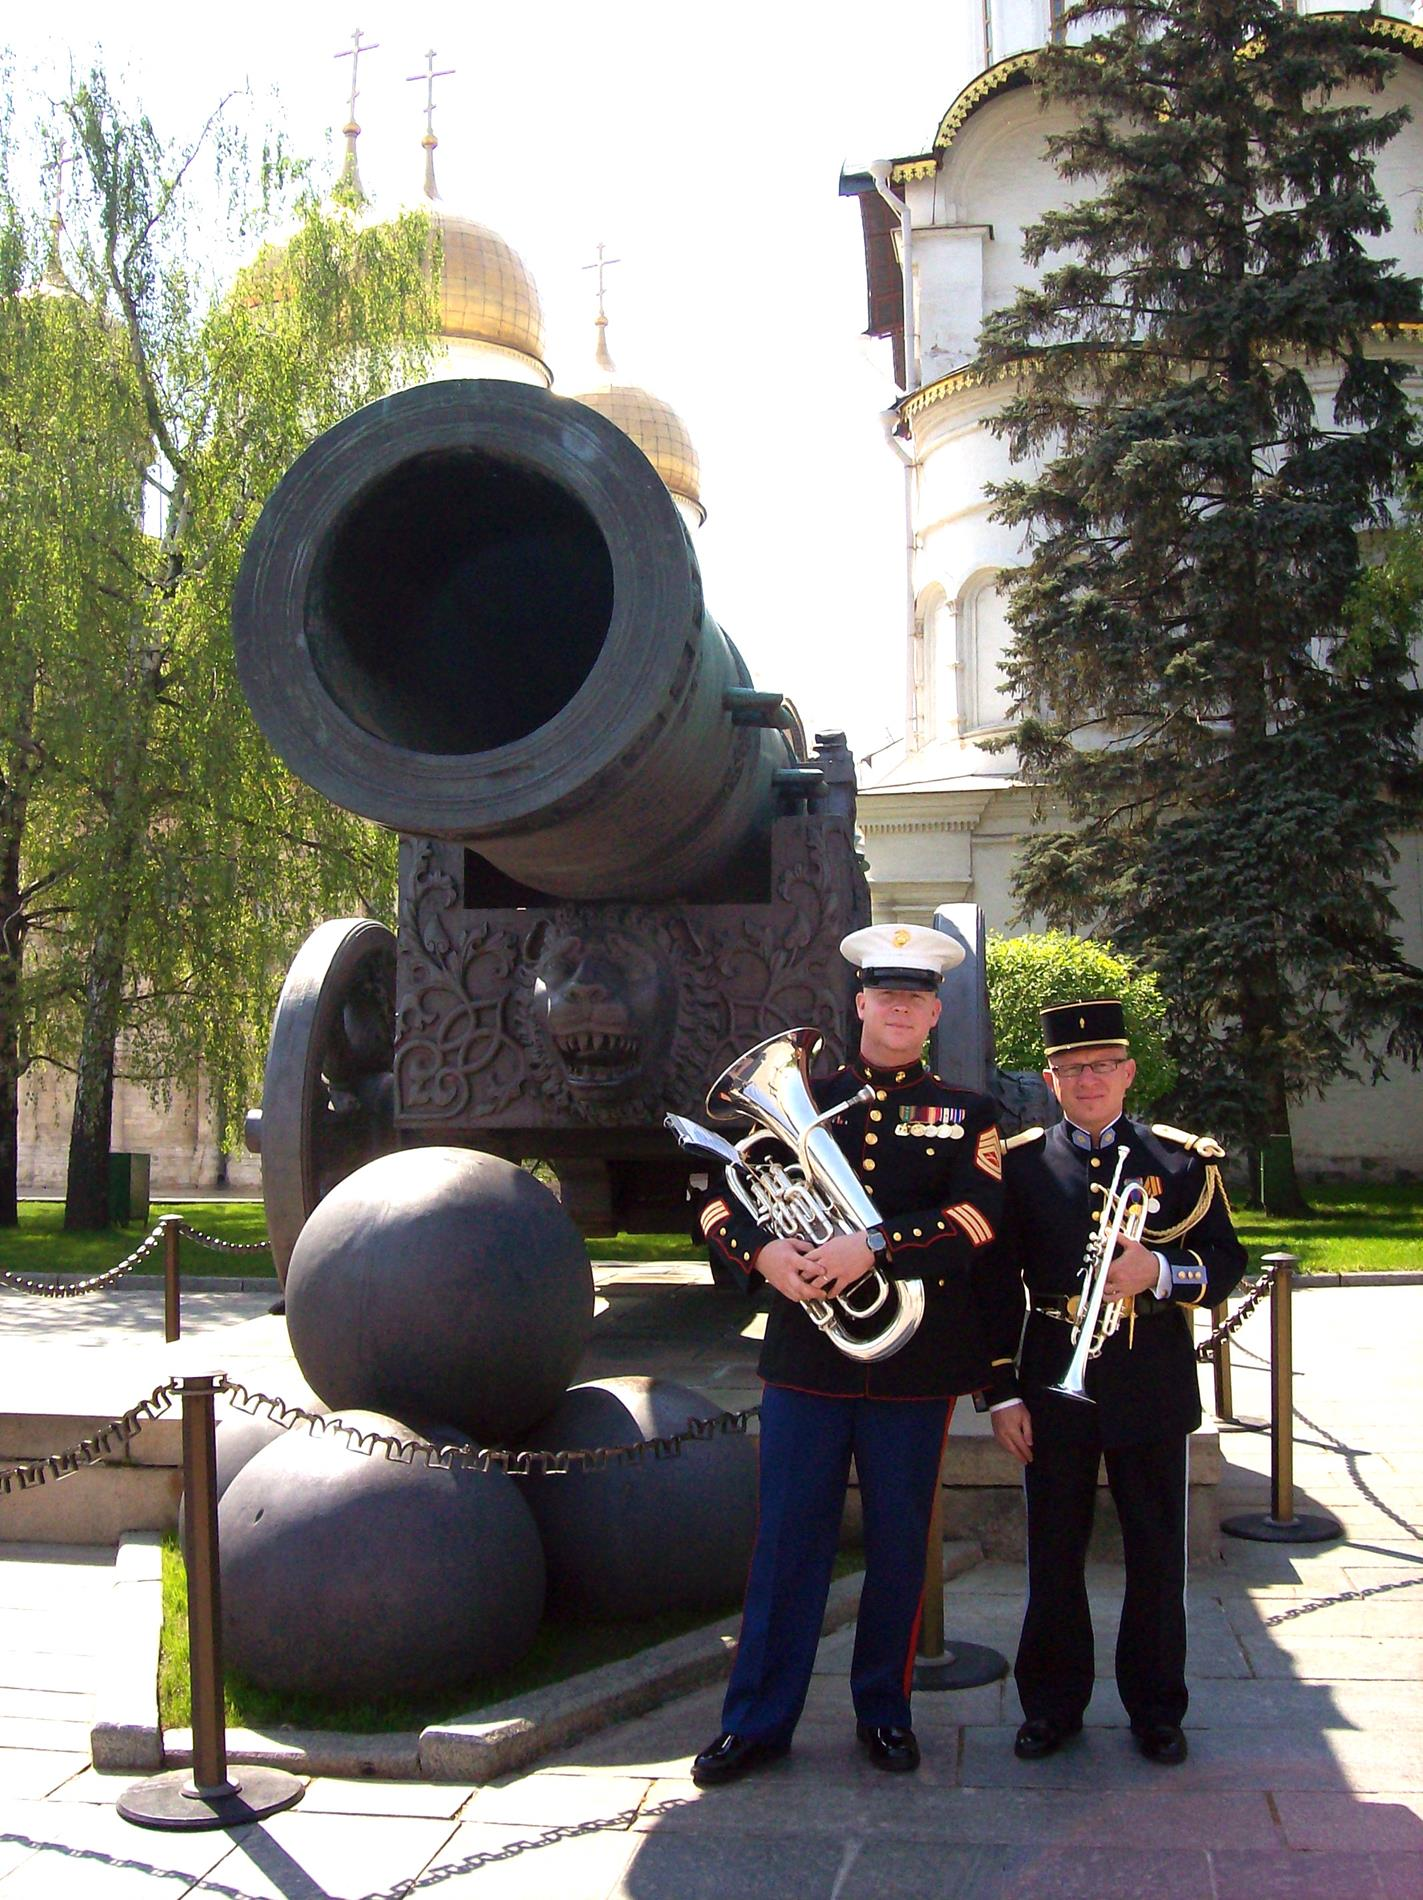 The Czar's Cannon inside the Kremlin, in Moscow. We did large performances with Russian, French, and English bands in celebration of the 70th anniversary of Moscow's Liberation during WWII. This is a good friend from the French Ground Band.